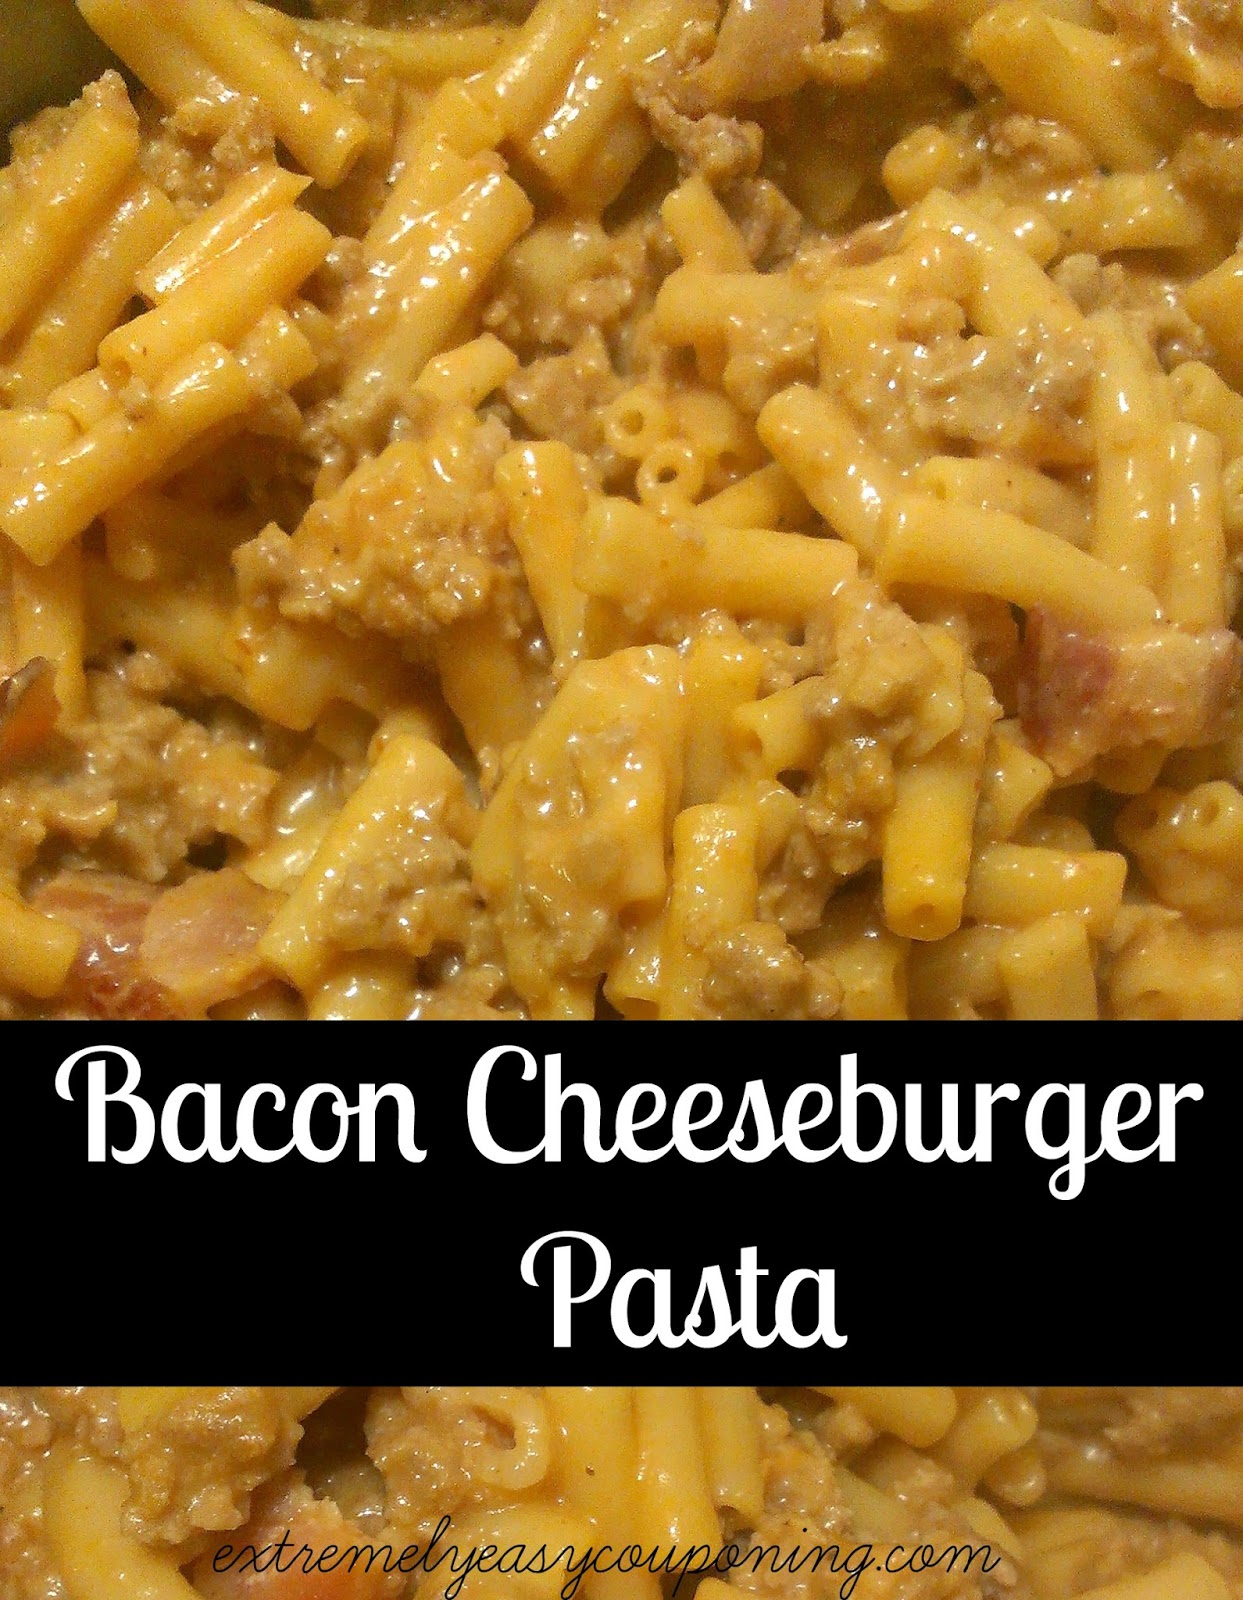 Extremely Easy Couponing: Bacon Cheeseburger Pasta Recipe